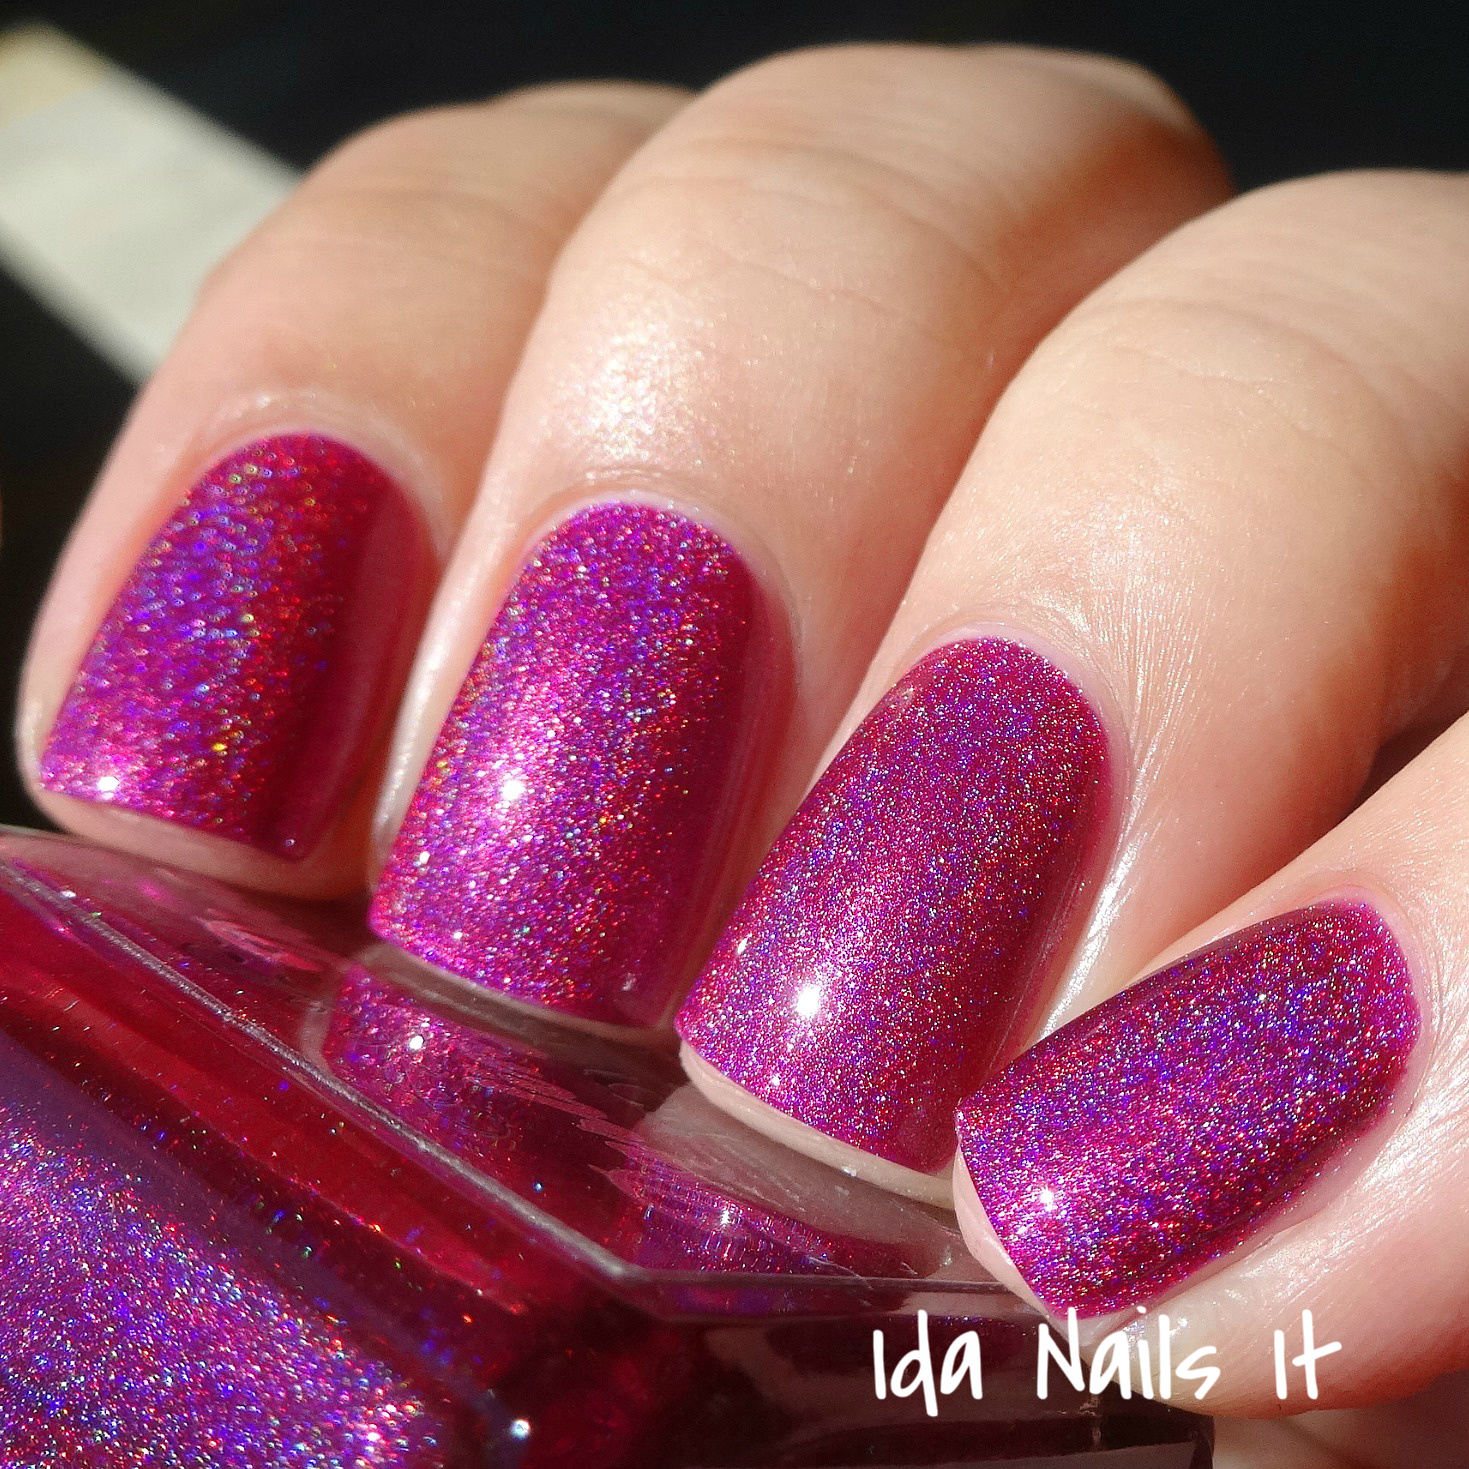 Ida Nails It: Darling Diva Polish Deadpool Collection: Swatches and ...